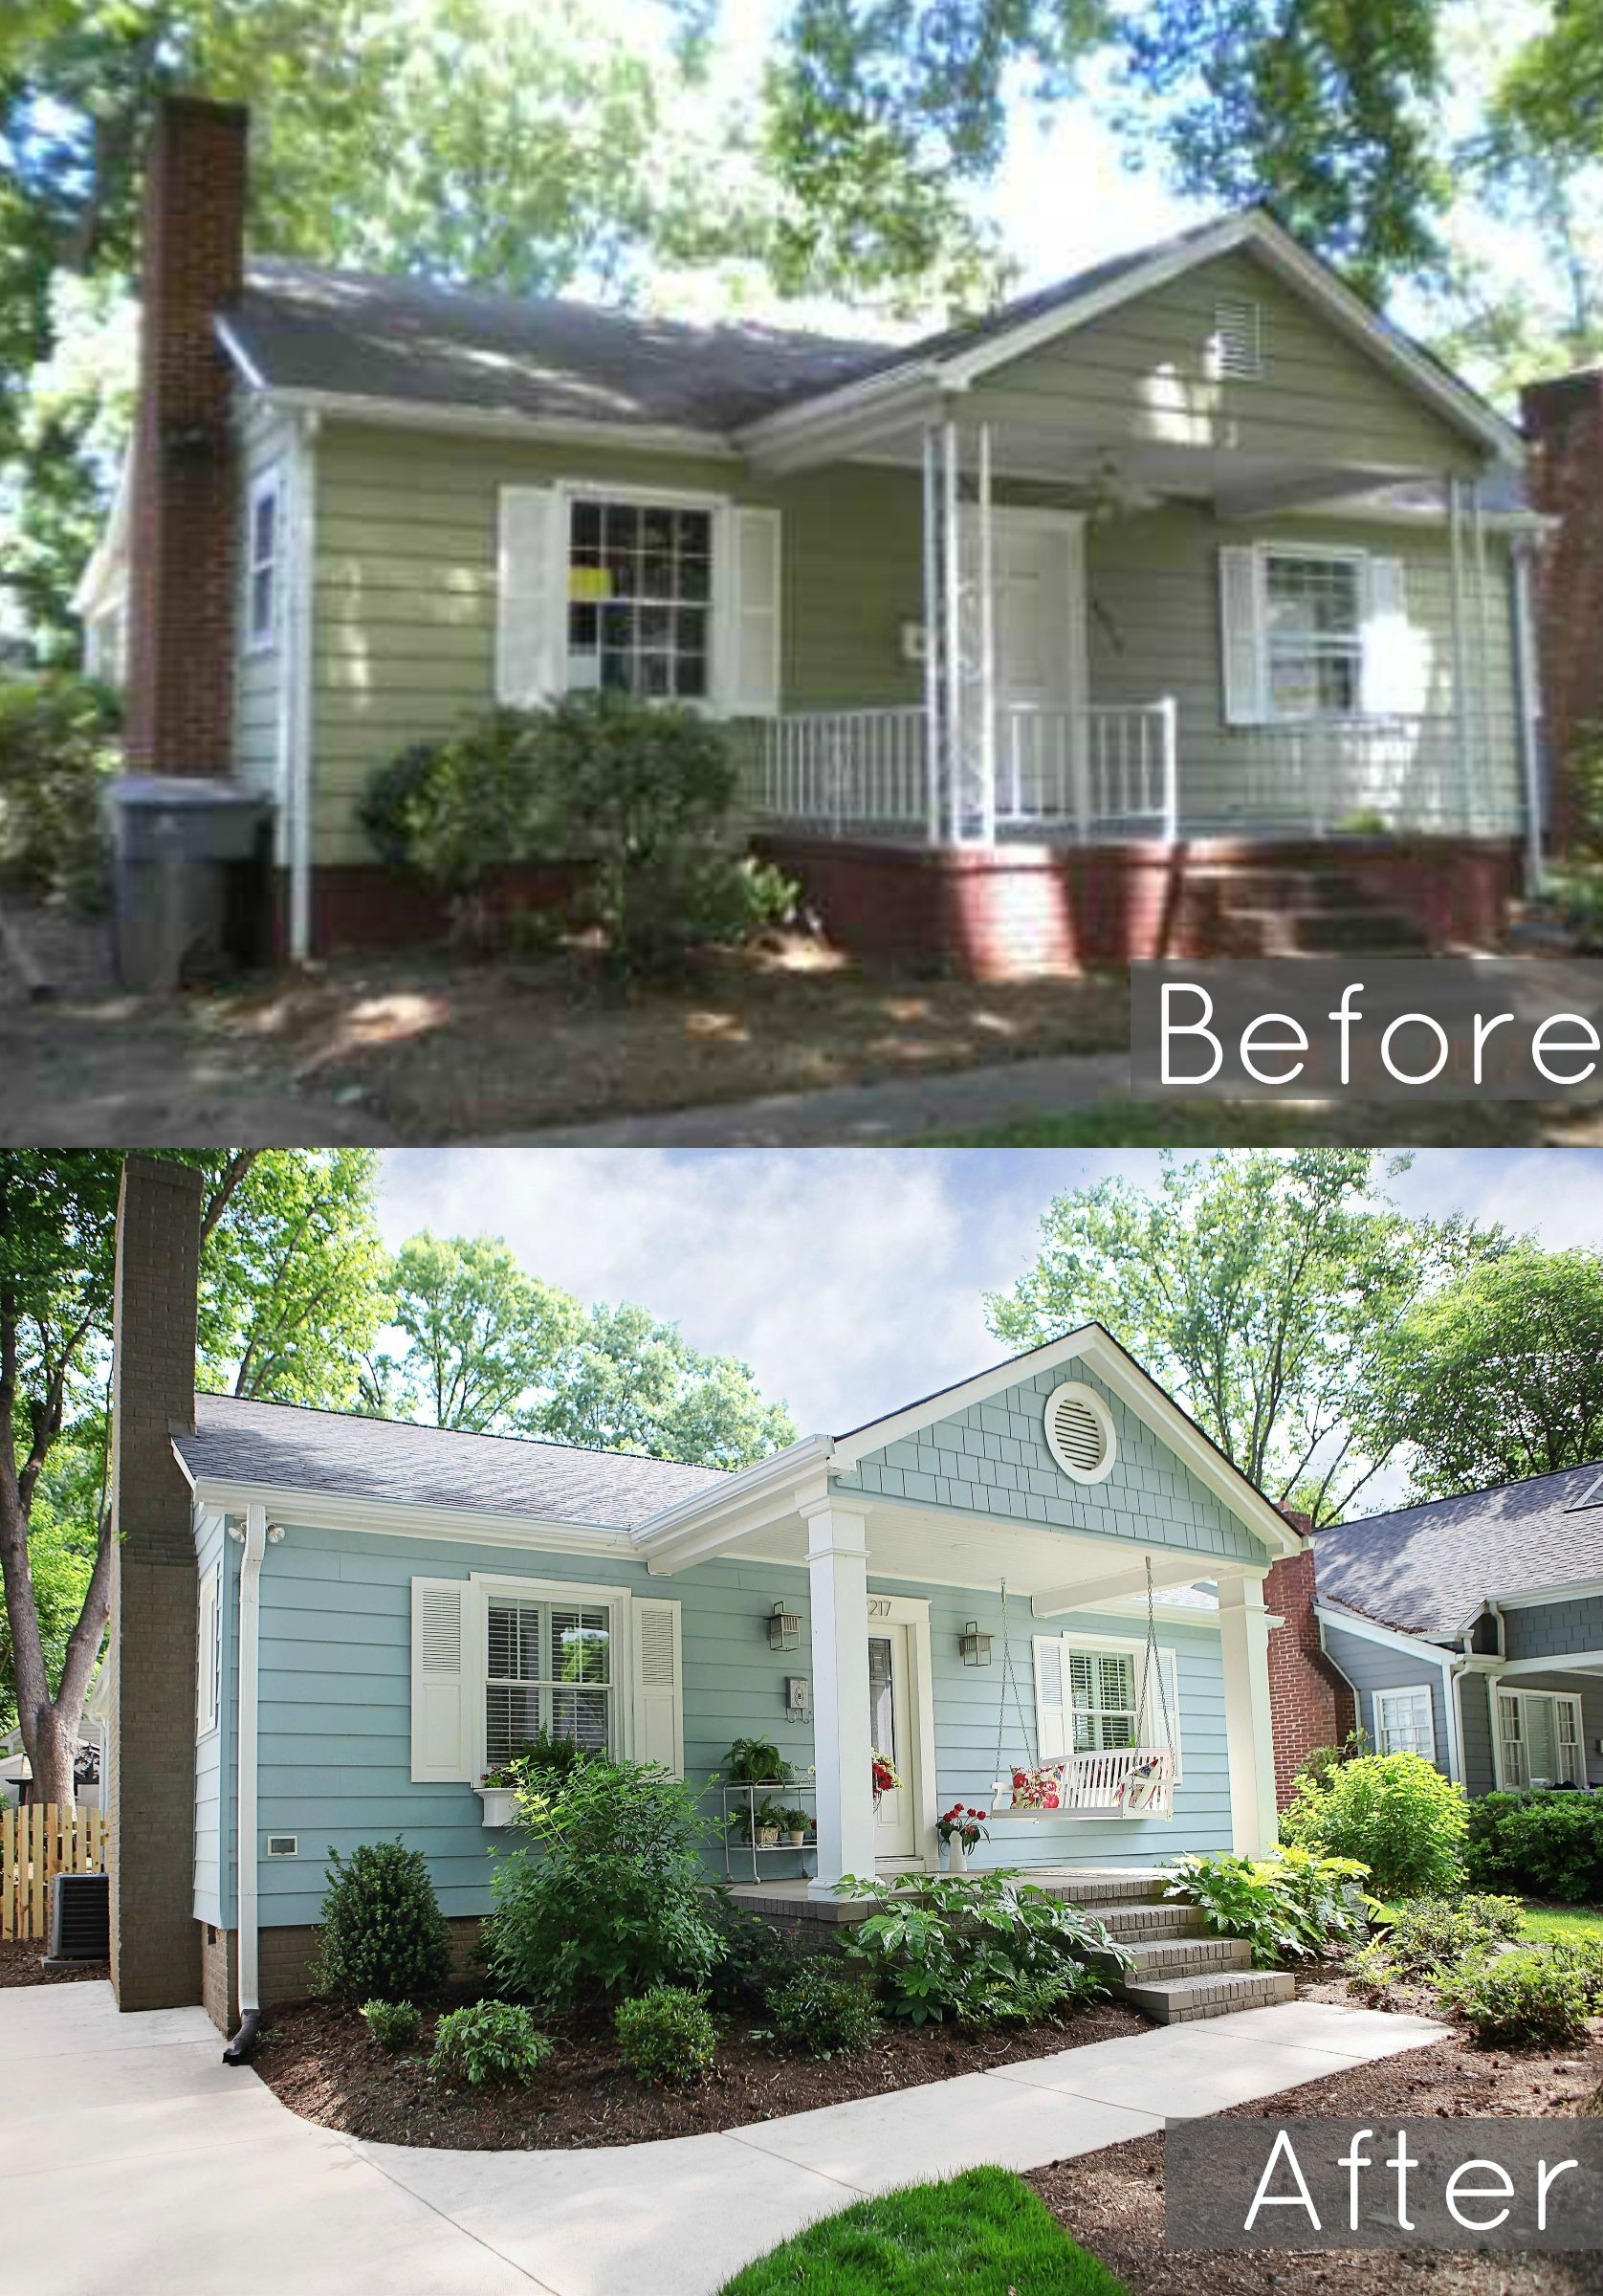 Modern Before And After Of Our 1940's Bungalows Exterior throughout Inspirational Small Bungalow